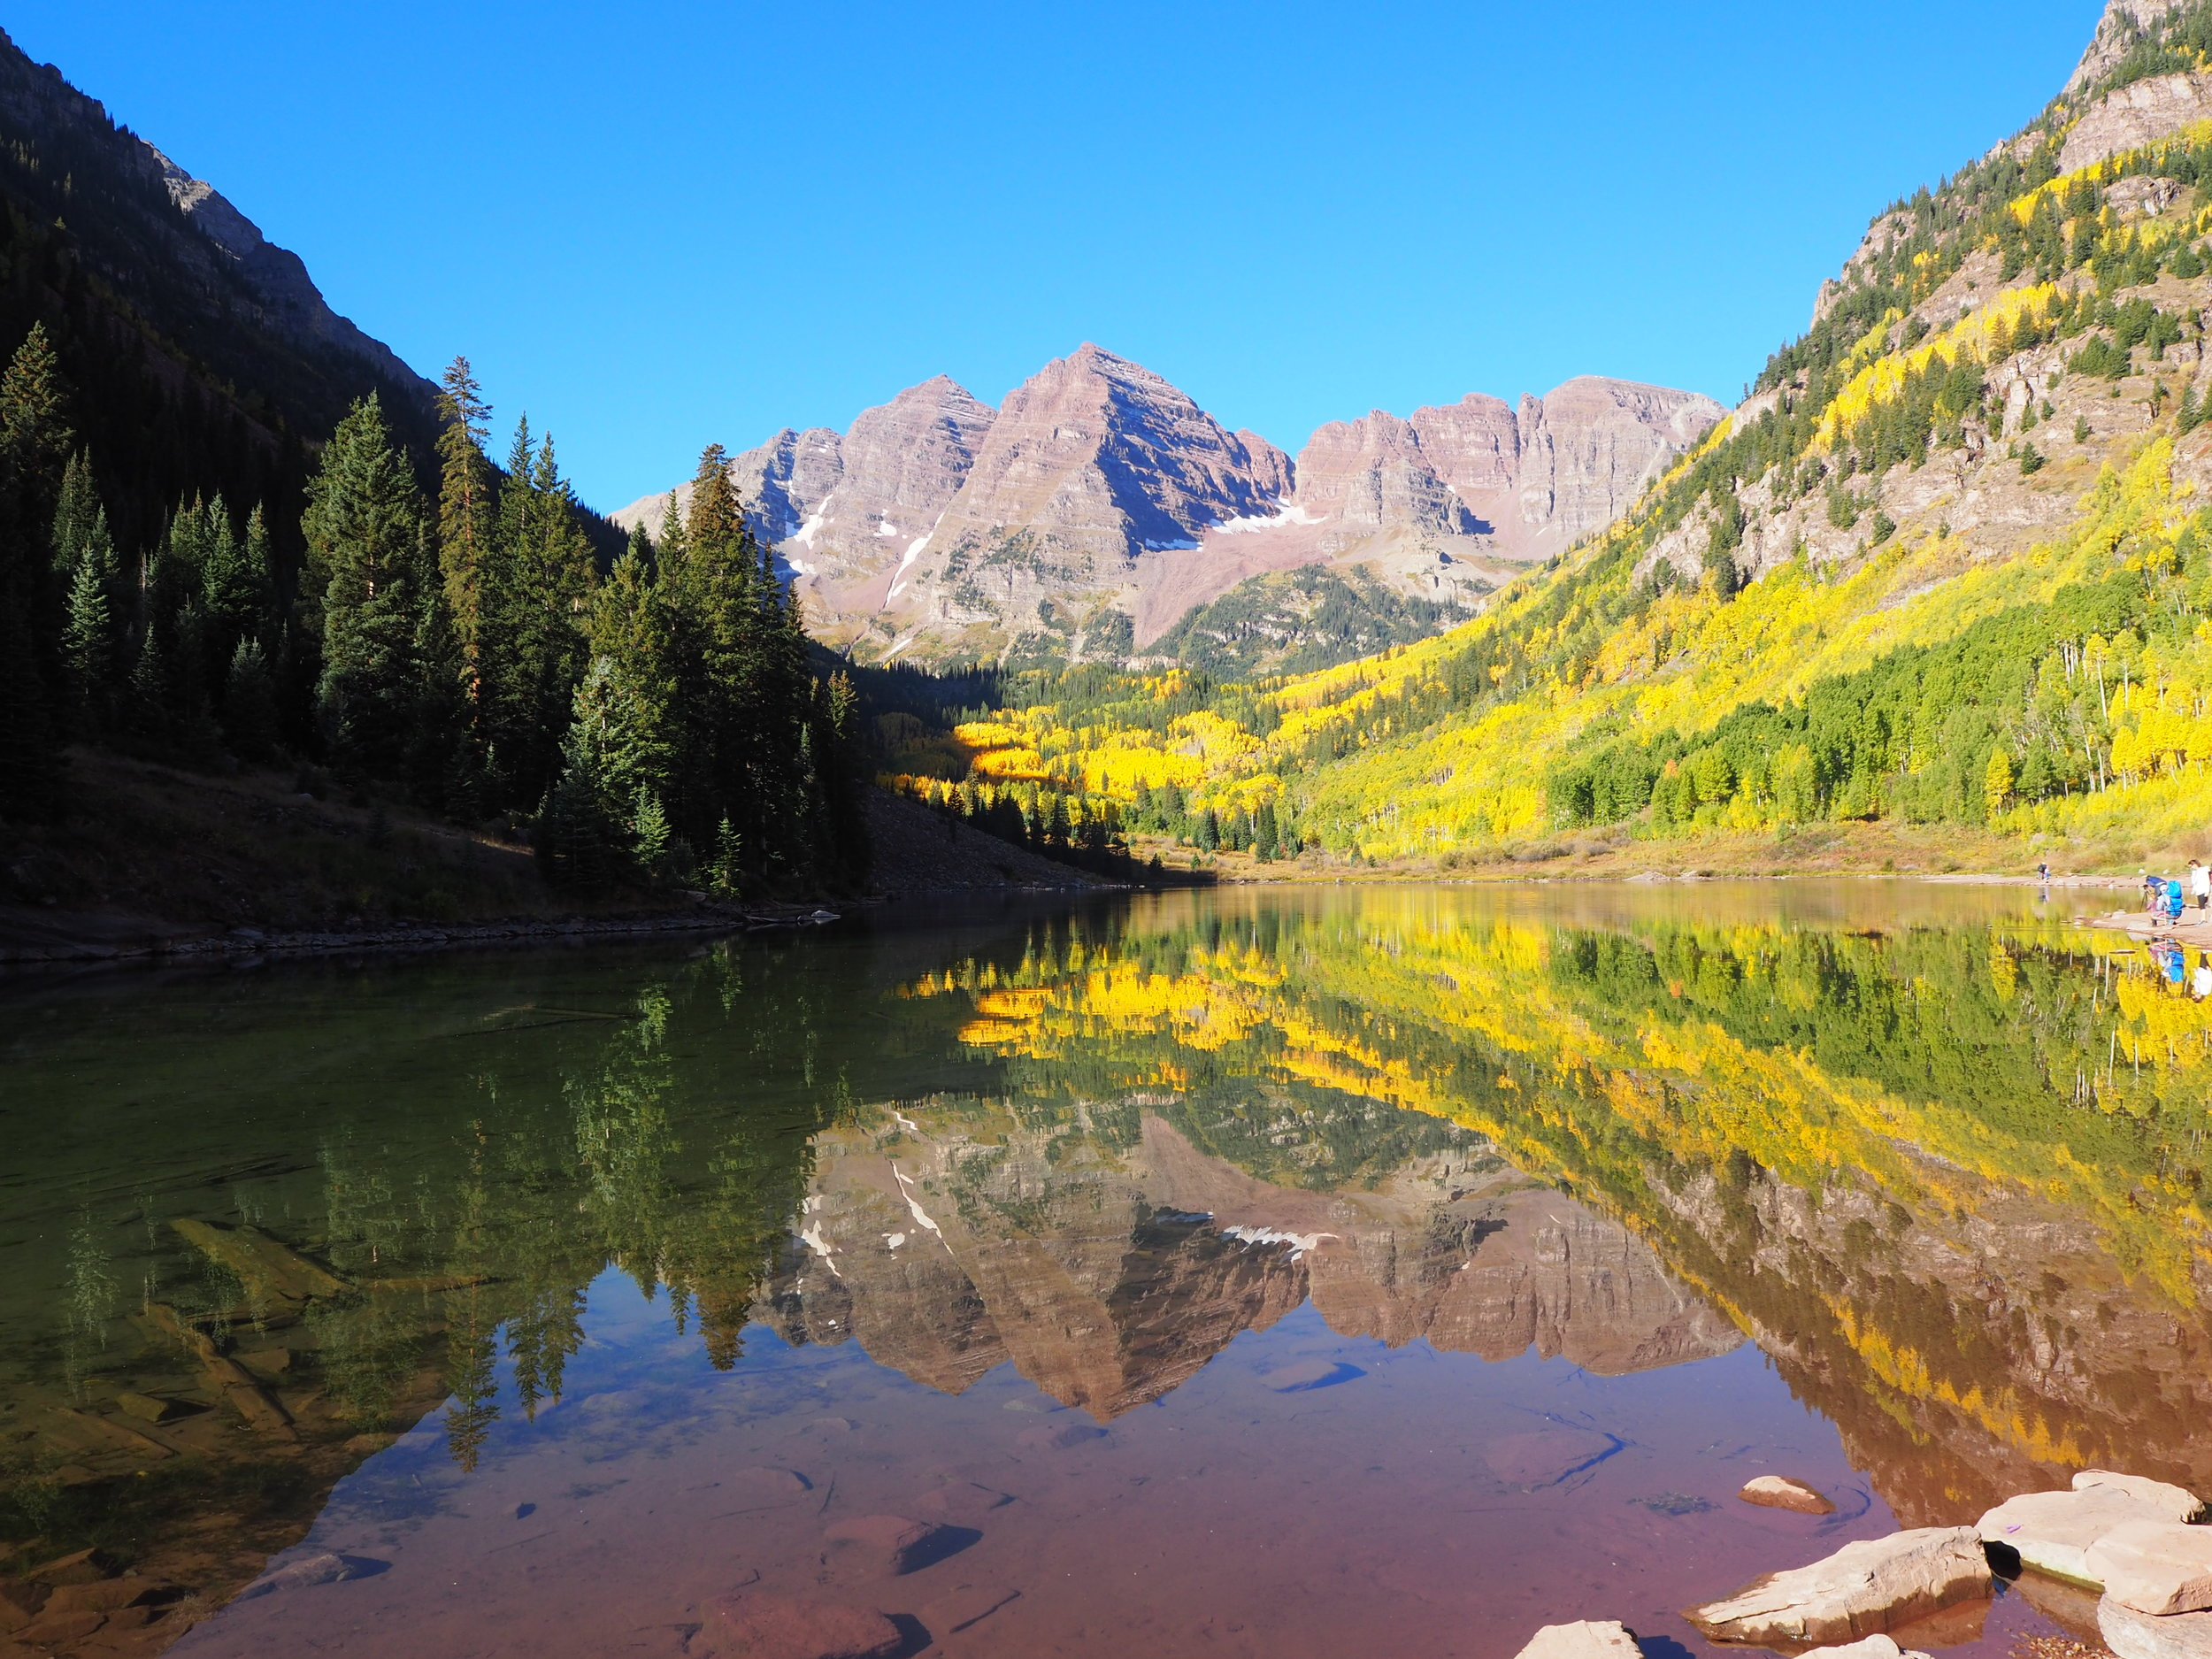 Maroon Bells: Photo by Jen Arensdorf